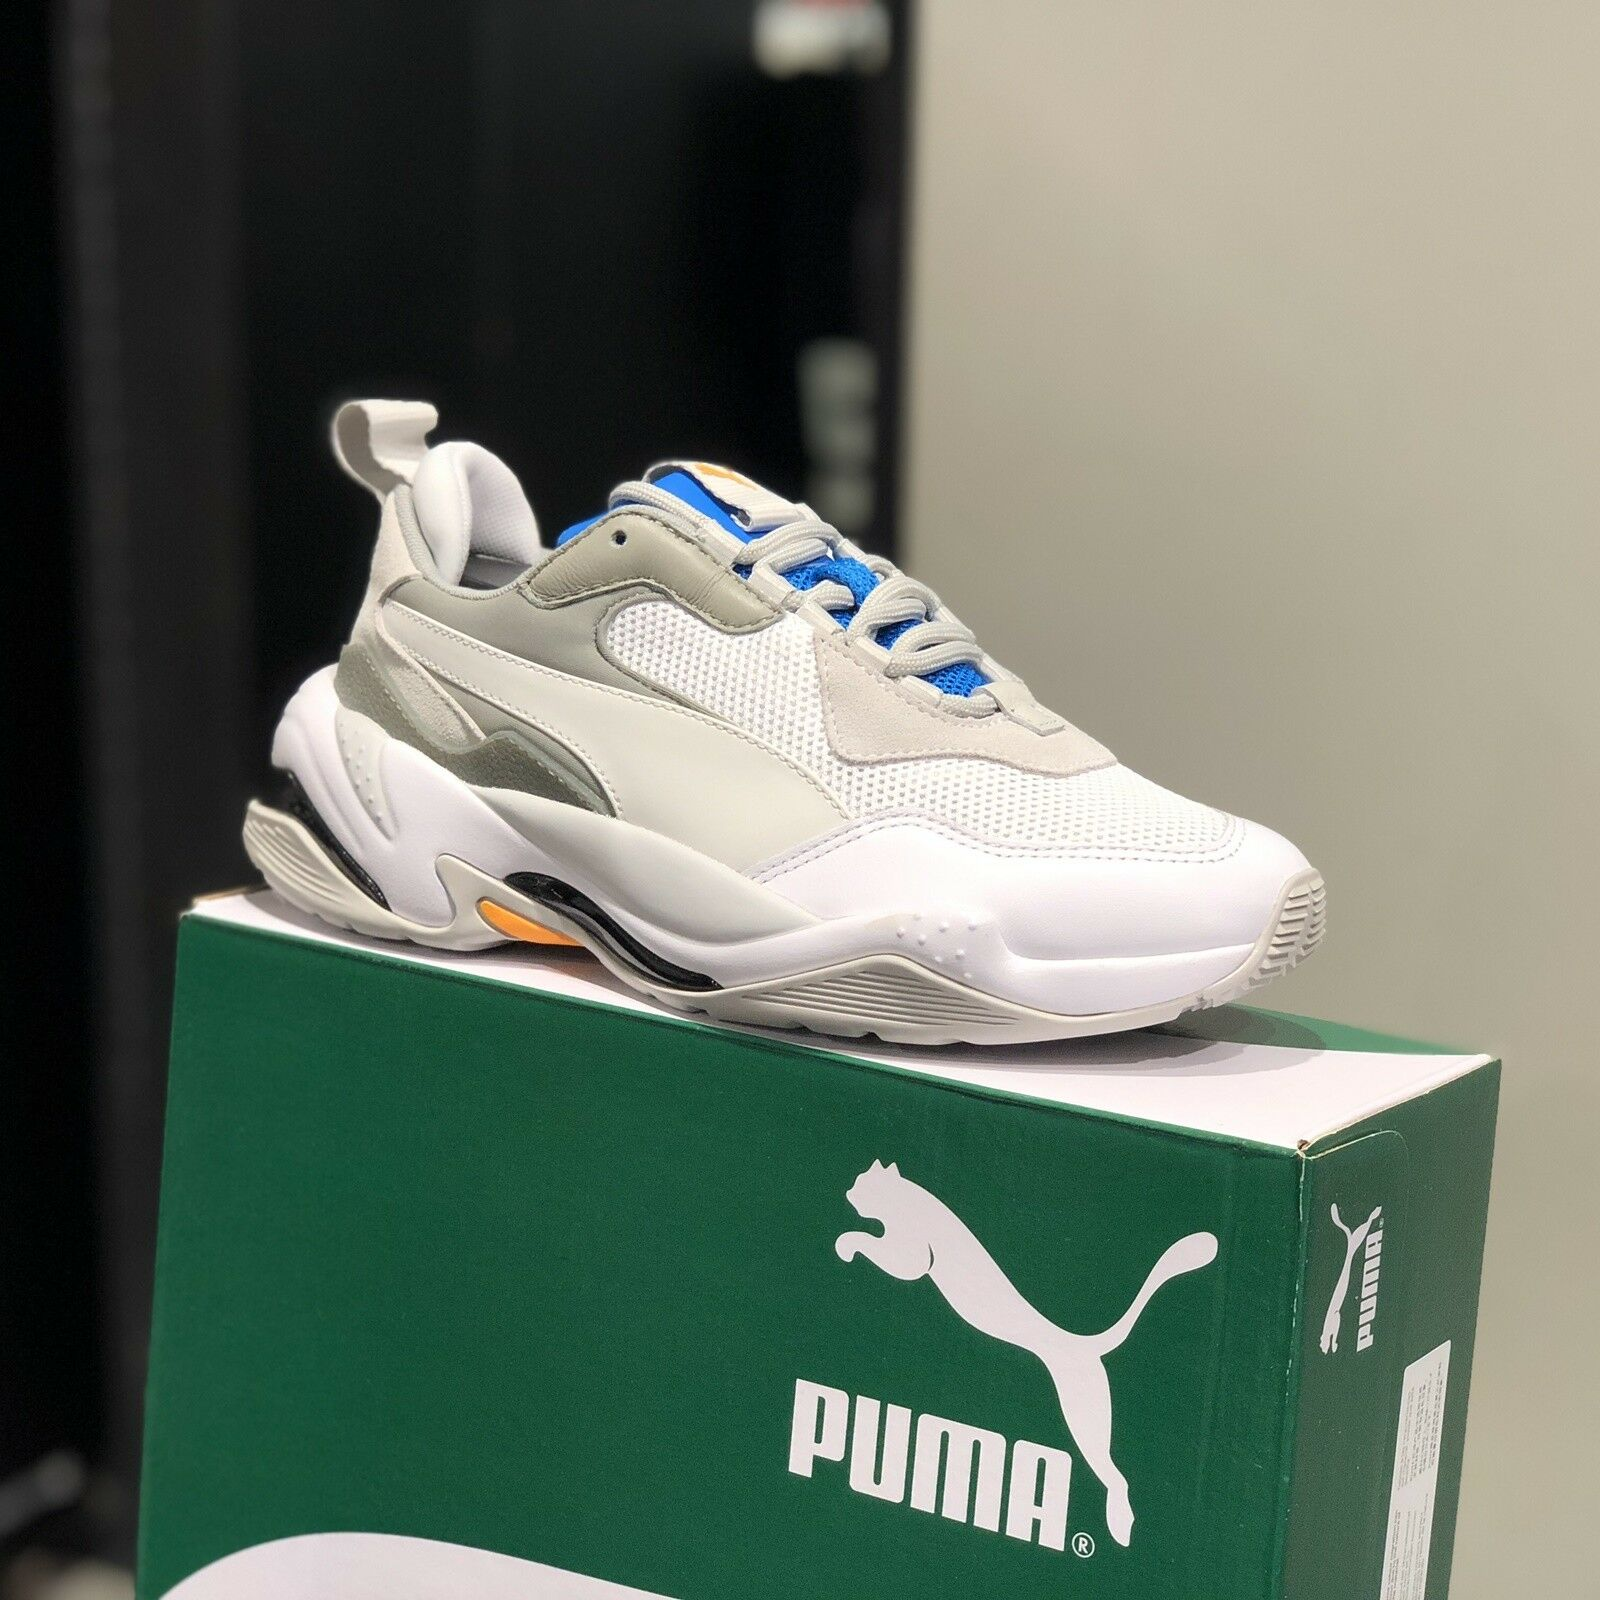 wholesale dealer 96a67 efc28 Puma THUNDER SPECTRA 36751608 - 367516 08 new with with with box and tag,  Authentic 2b028a